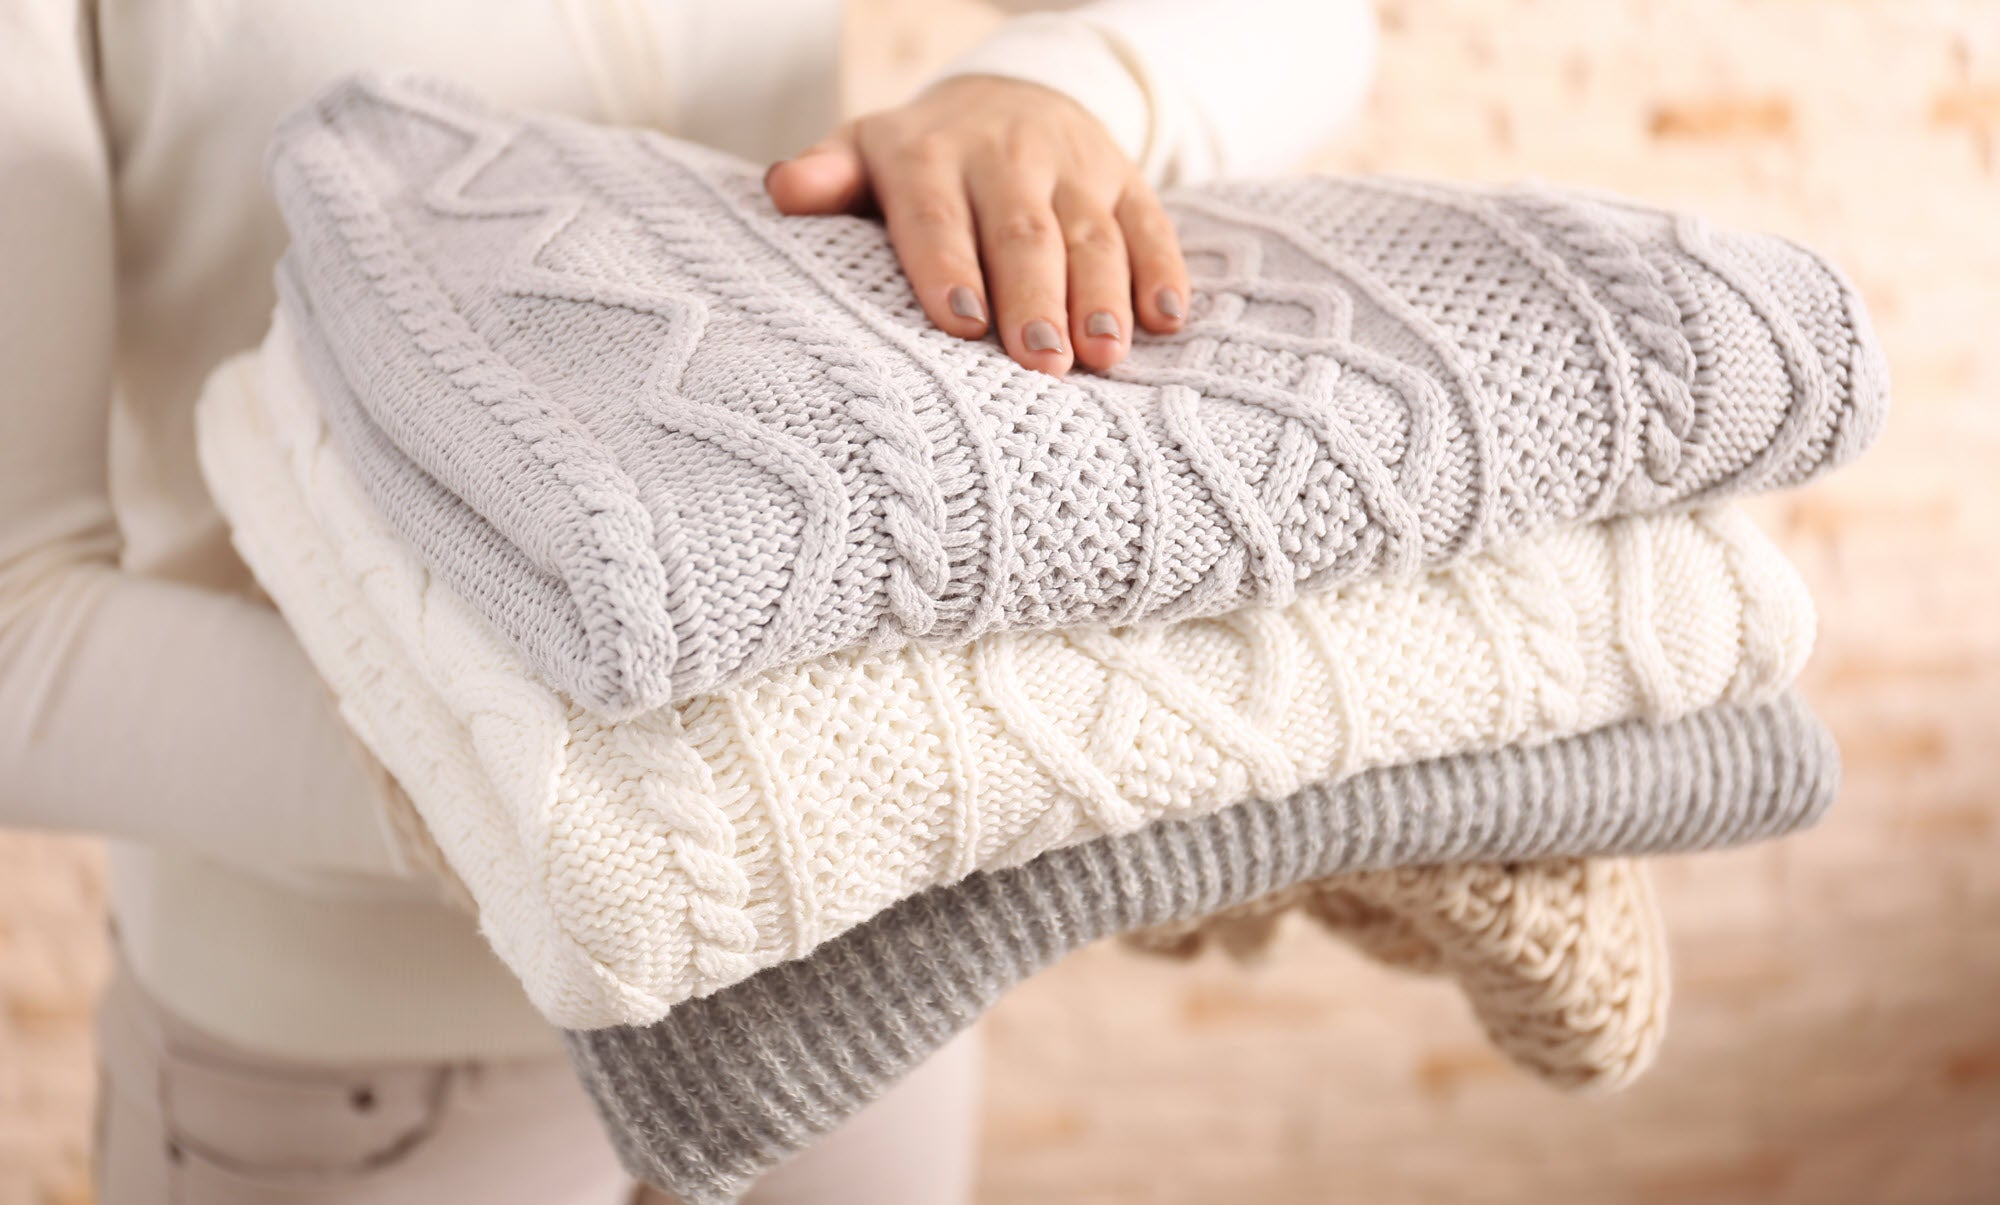 Make sure to choose the right detergent when washing wool garments